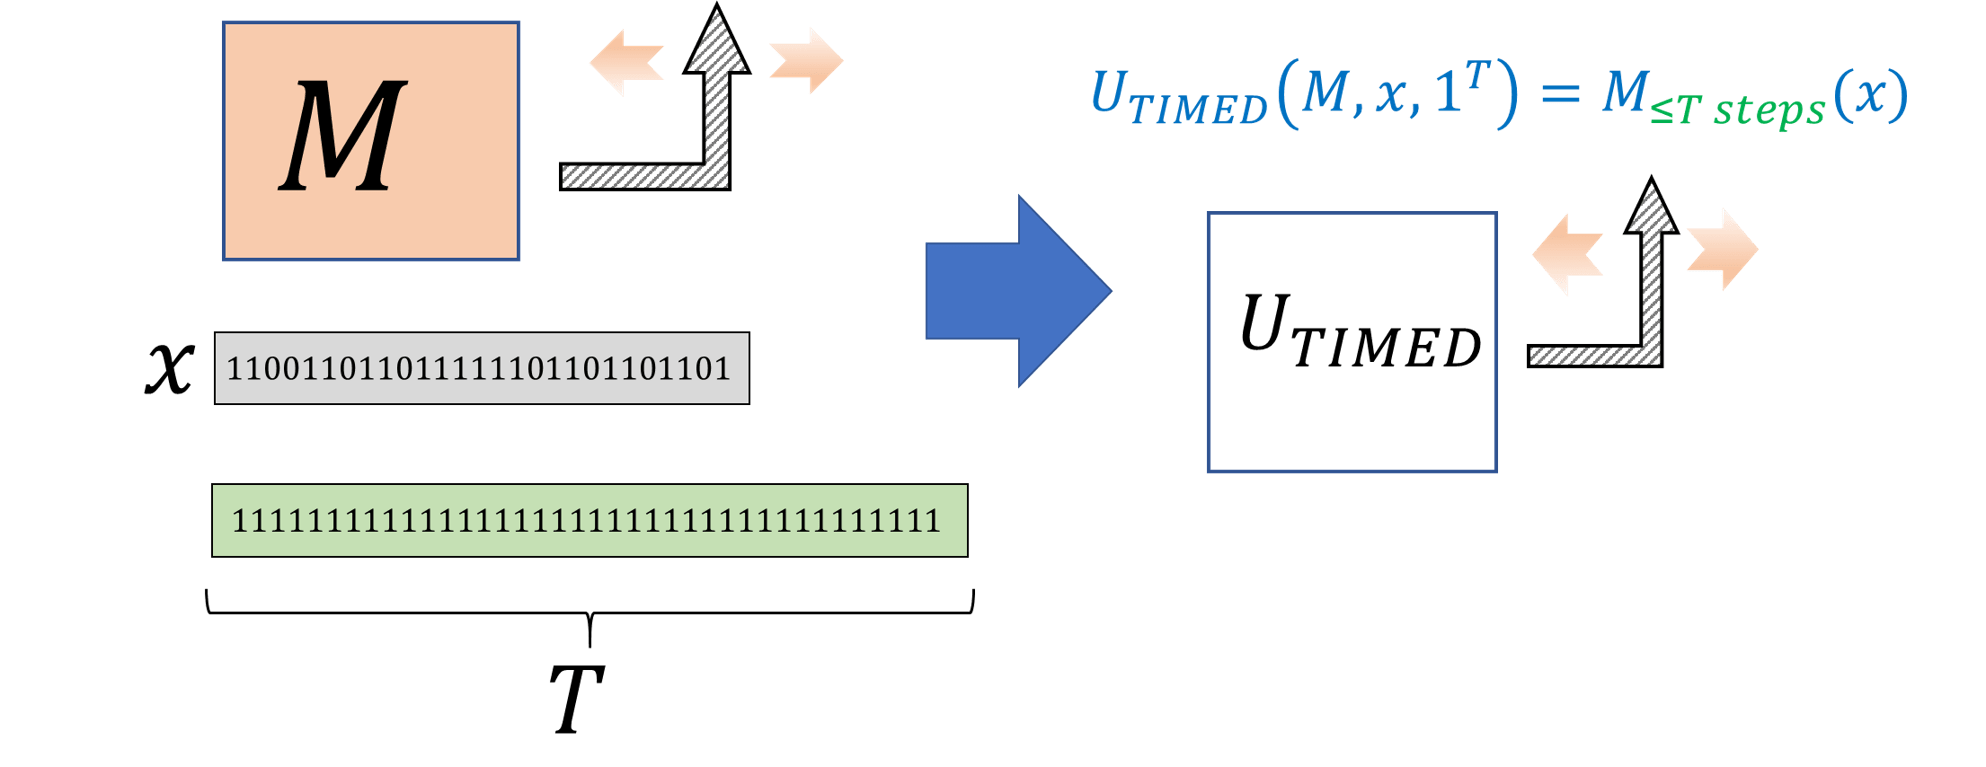 ??: The timed universal Turing Machine takes as input a Turing machine M, an input x, and a time bound T, and outputs M(x) if M halts within at most T steps. states that there is such a machine that runs in time polynomial in T.